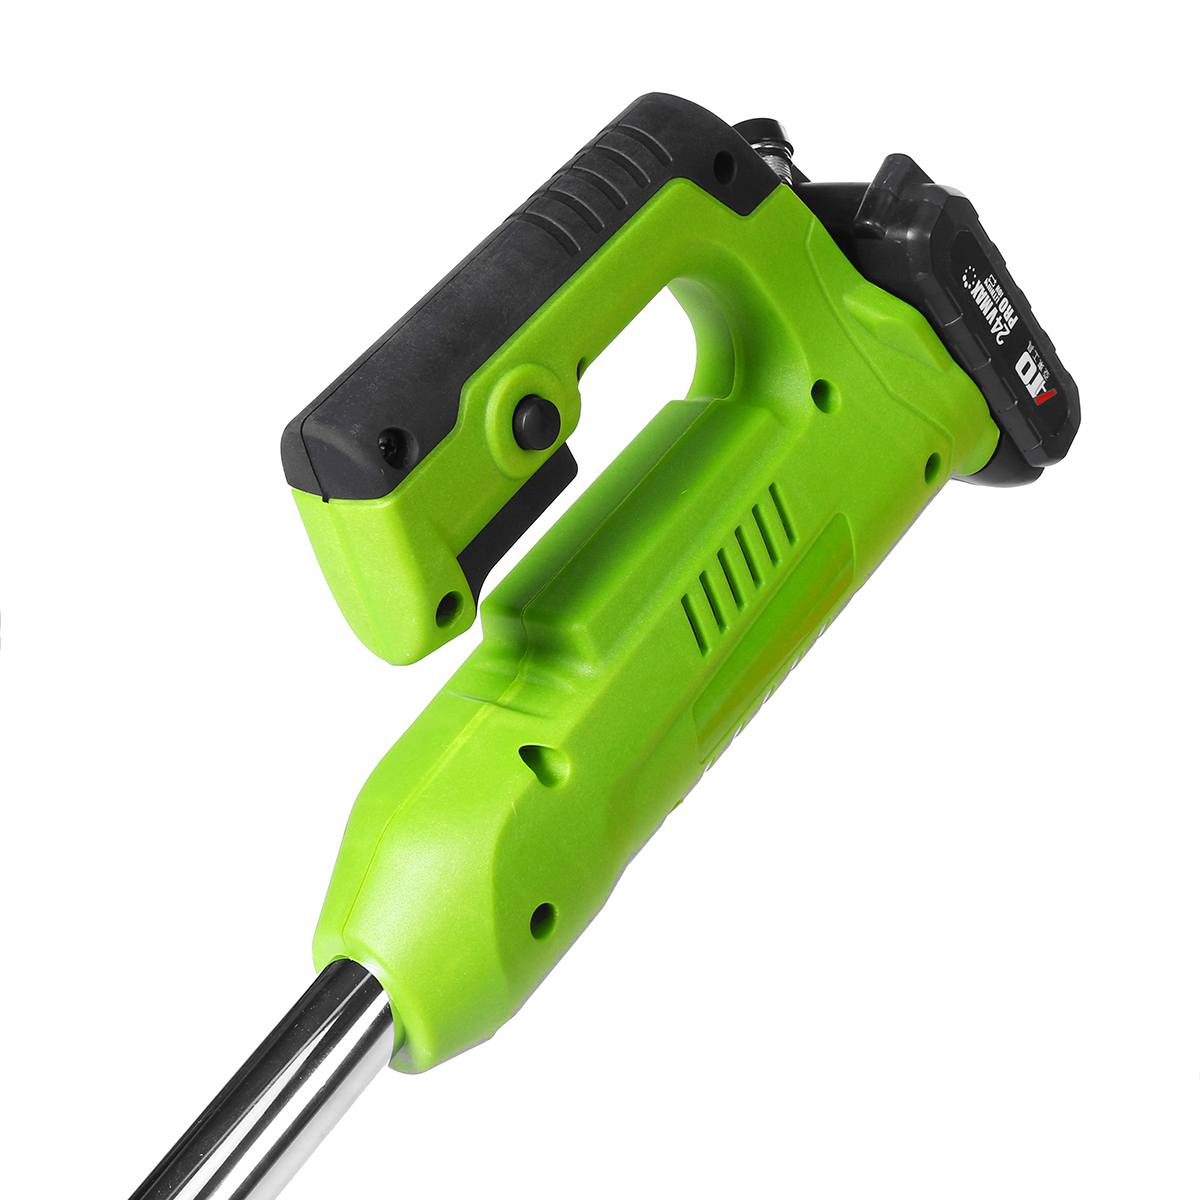 Tools : 24V Electric Lawn Mower with 2PC 3000mAh Li-ion Battery Cordless Grass Trimmer Auto Release String Cutter Garden Power Tool